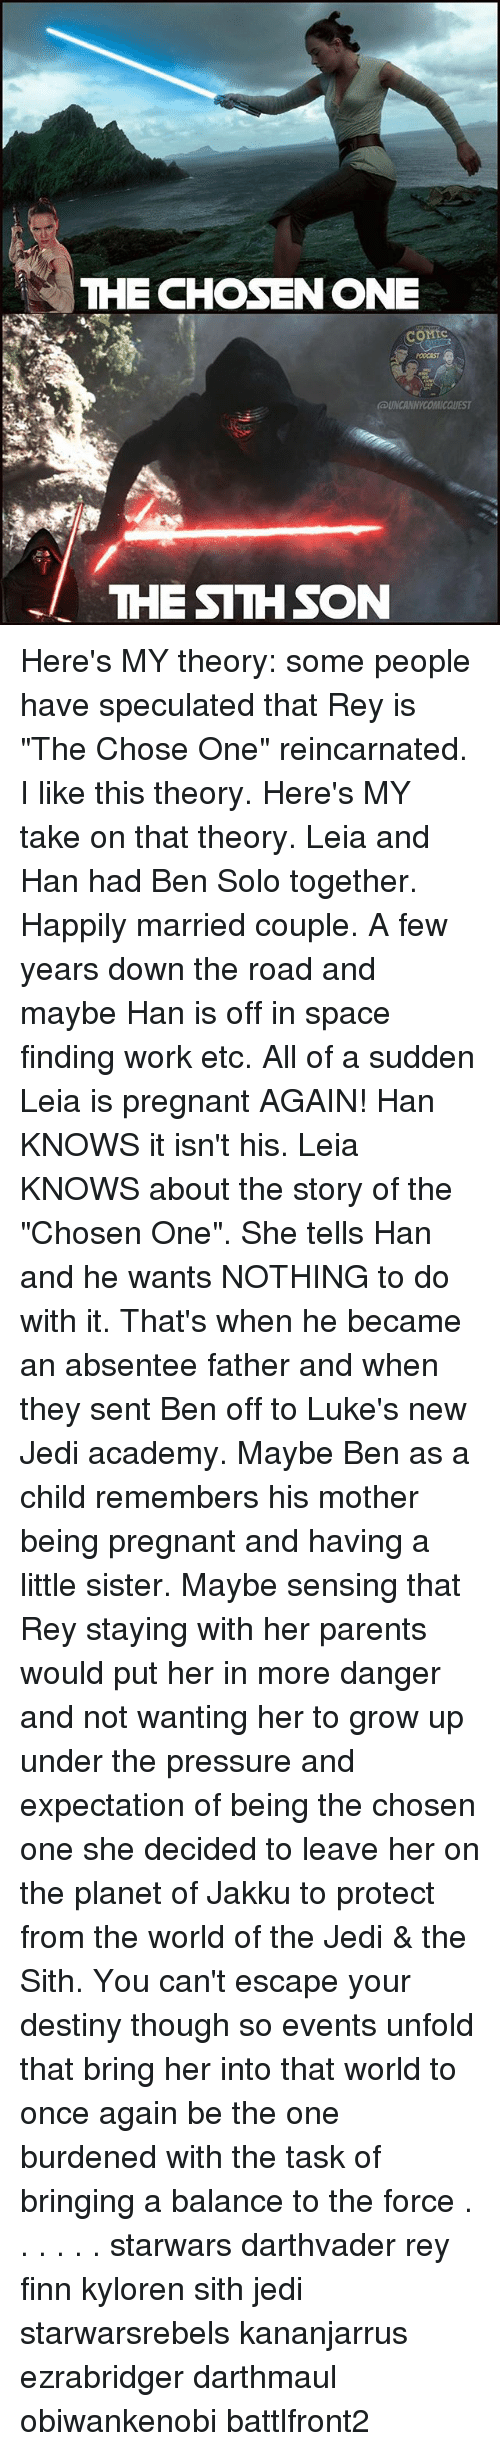 """Destiny, Finn, and Jakku: THE CHOSENONE  PODCAST  THE SITHSON Here's MY theory: some people have speculated that Rey is """"The Chose One"""" reincarnated. I like this theory. Here's MY take on that theory. Leia and Han had Ben Solo together. Happily married couple. A few years down the road and maybe Han is off in space finding work etc. All of a sudden Leia is pregnant AGAIN! Han KNOWS it isn't his. Leia KNOWS about the story of the """"Chosen One"""". She tells Han and he wants NOTHING to do with it. That's when he became an absentee father and when they sent Ben off to Luke's new Jedi academy. Maybe Ben as a child remembers his mother being pregnant and having a little sister. Maybe sensing that Rey staying with her parents would put her in more danger and not wanting her to grow up under the pressure and expectation of being the chosen one she decided to leave her on the planet of Jakku to protect from the world of the Jedi & the Sith. You can't escape your destiny though so events unfold that bring her into that world to once again be the one burdened with the task of bringing a balance to the force . . . . . . starwars darthvader rey finn kyloren sith jedi starwarsrebels kananjarrus ezrabridger darthmaul obiwankenobi battlfront2"""